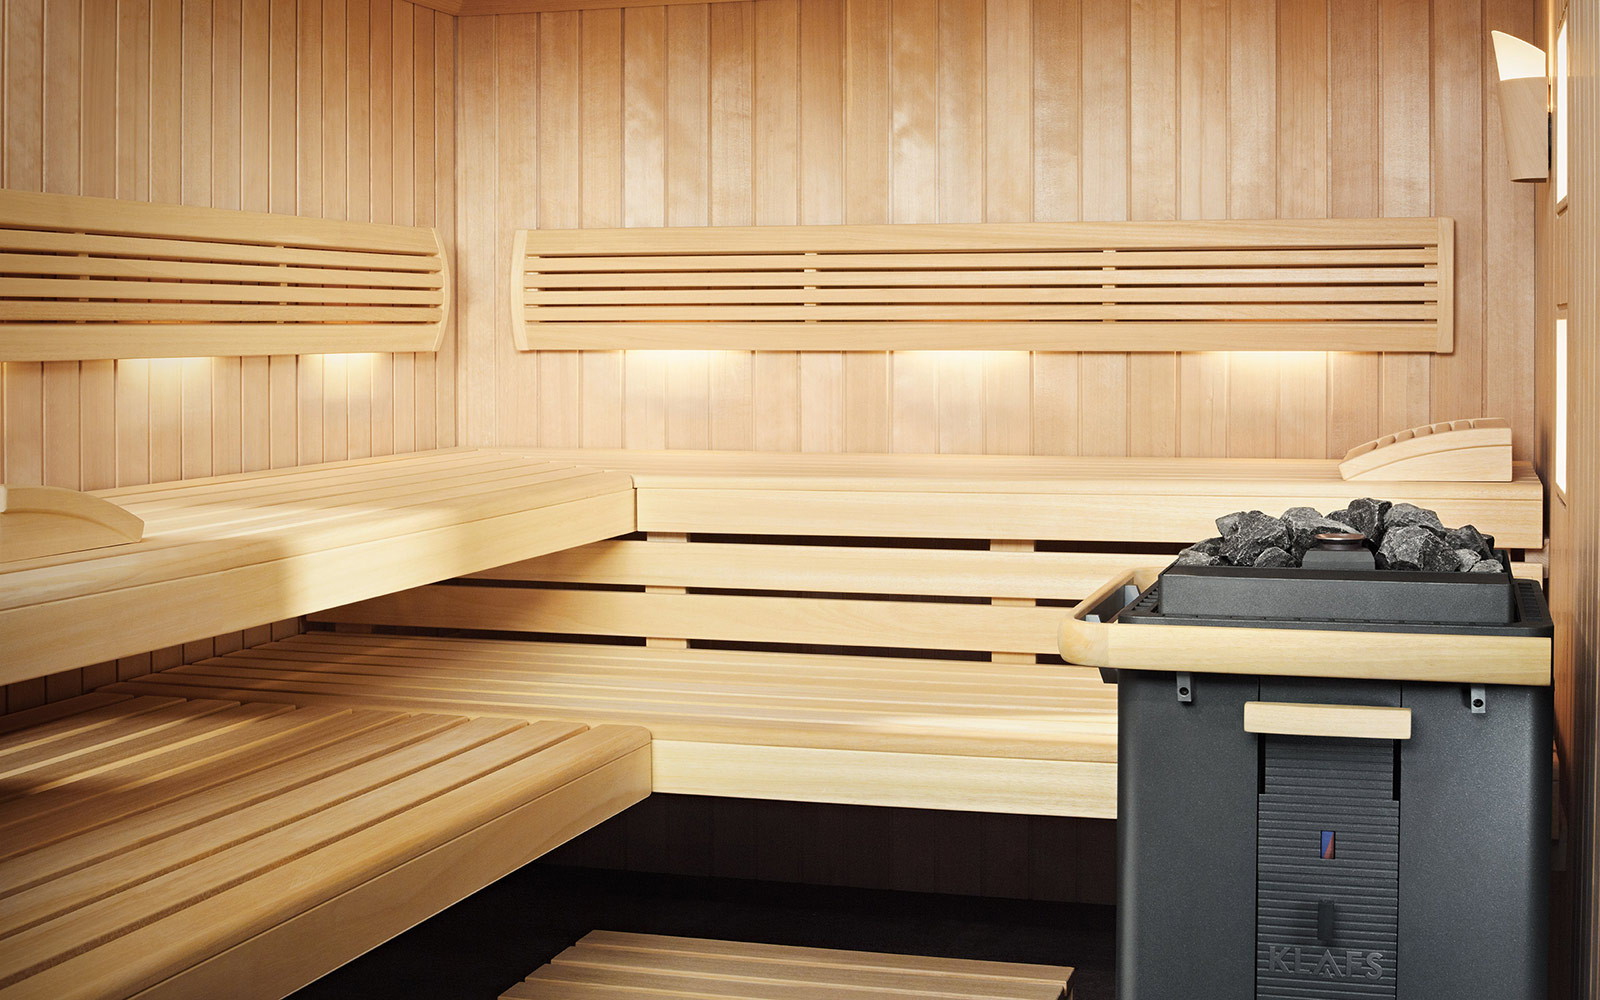 Klafs S1 Sauna Steam And Wellness For The Home By Klafs Installed By Guncast